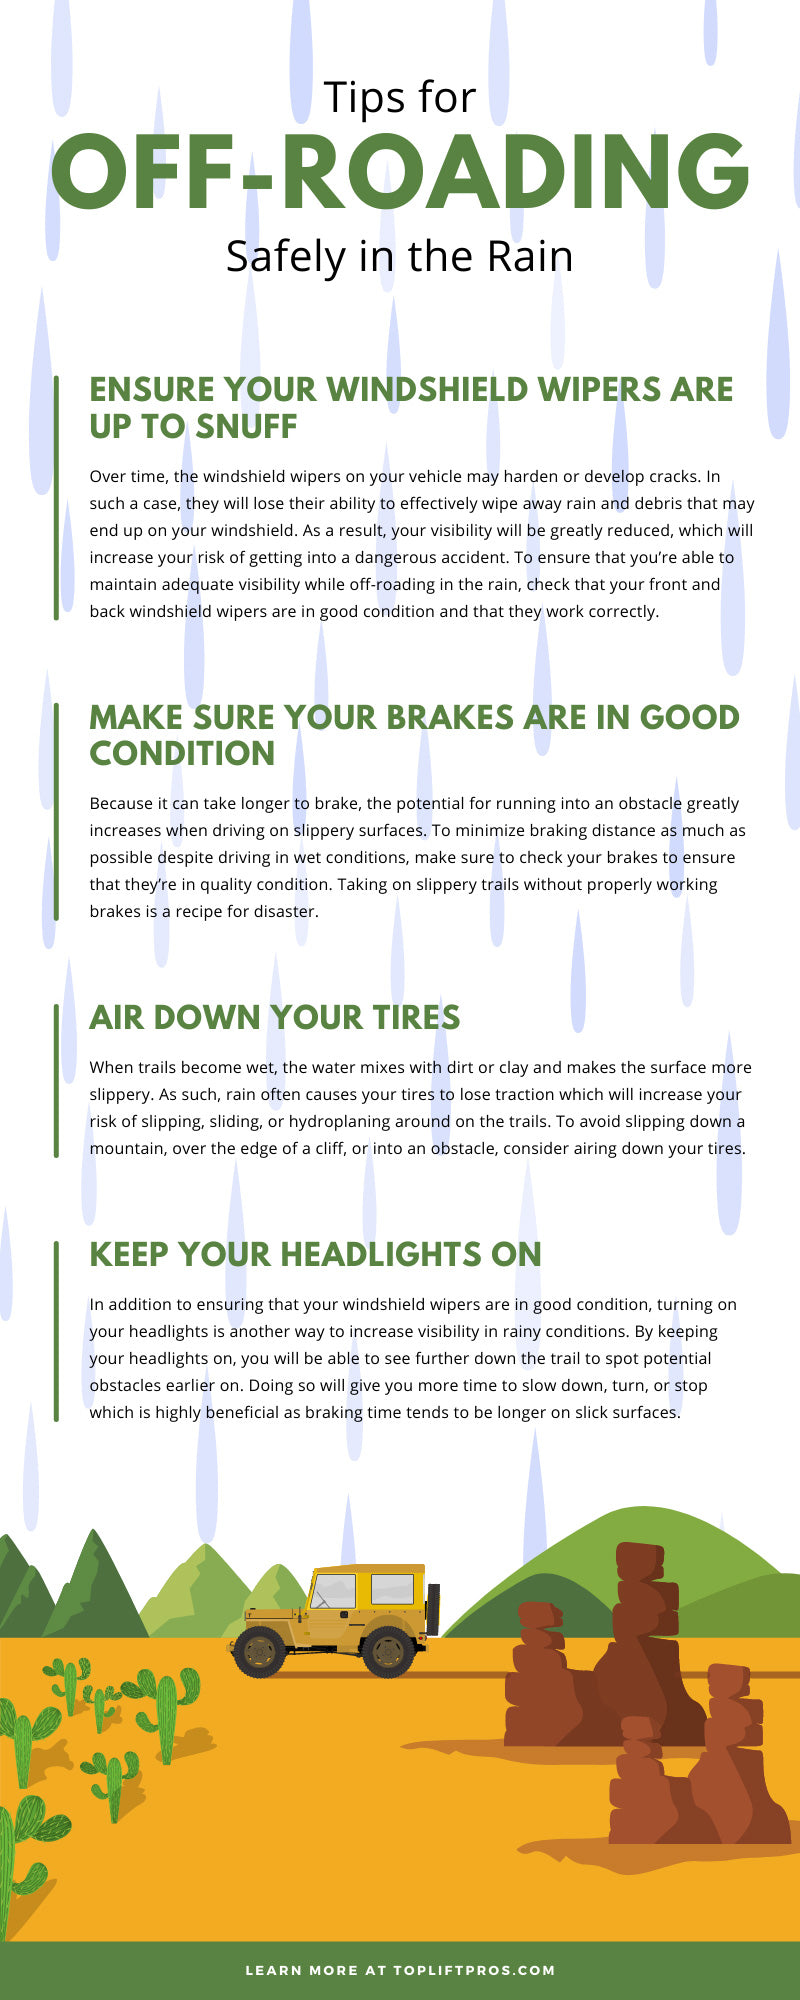 Tips for Off-Roading Safely in the Rain